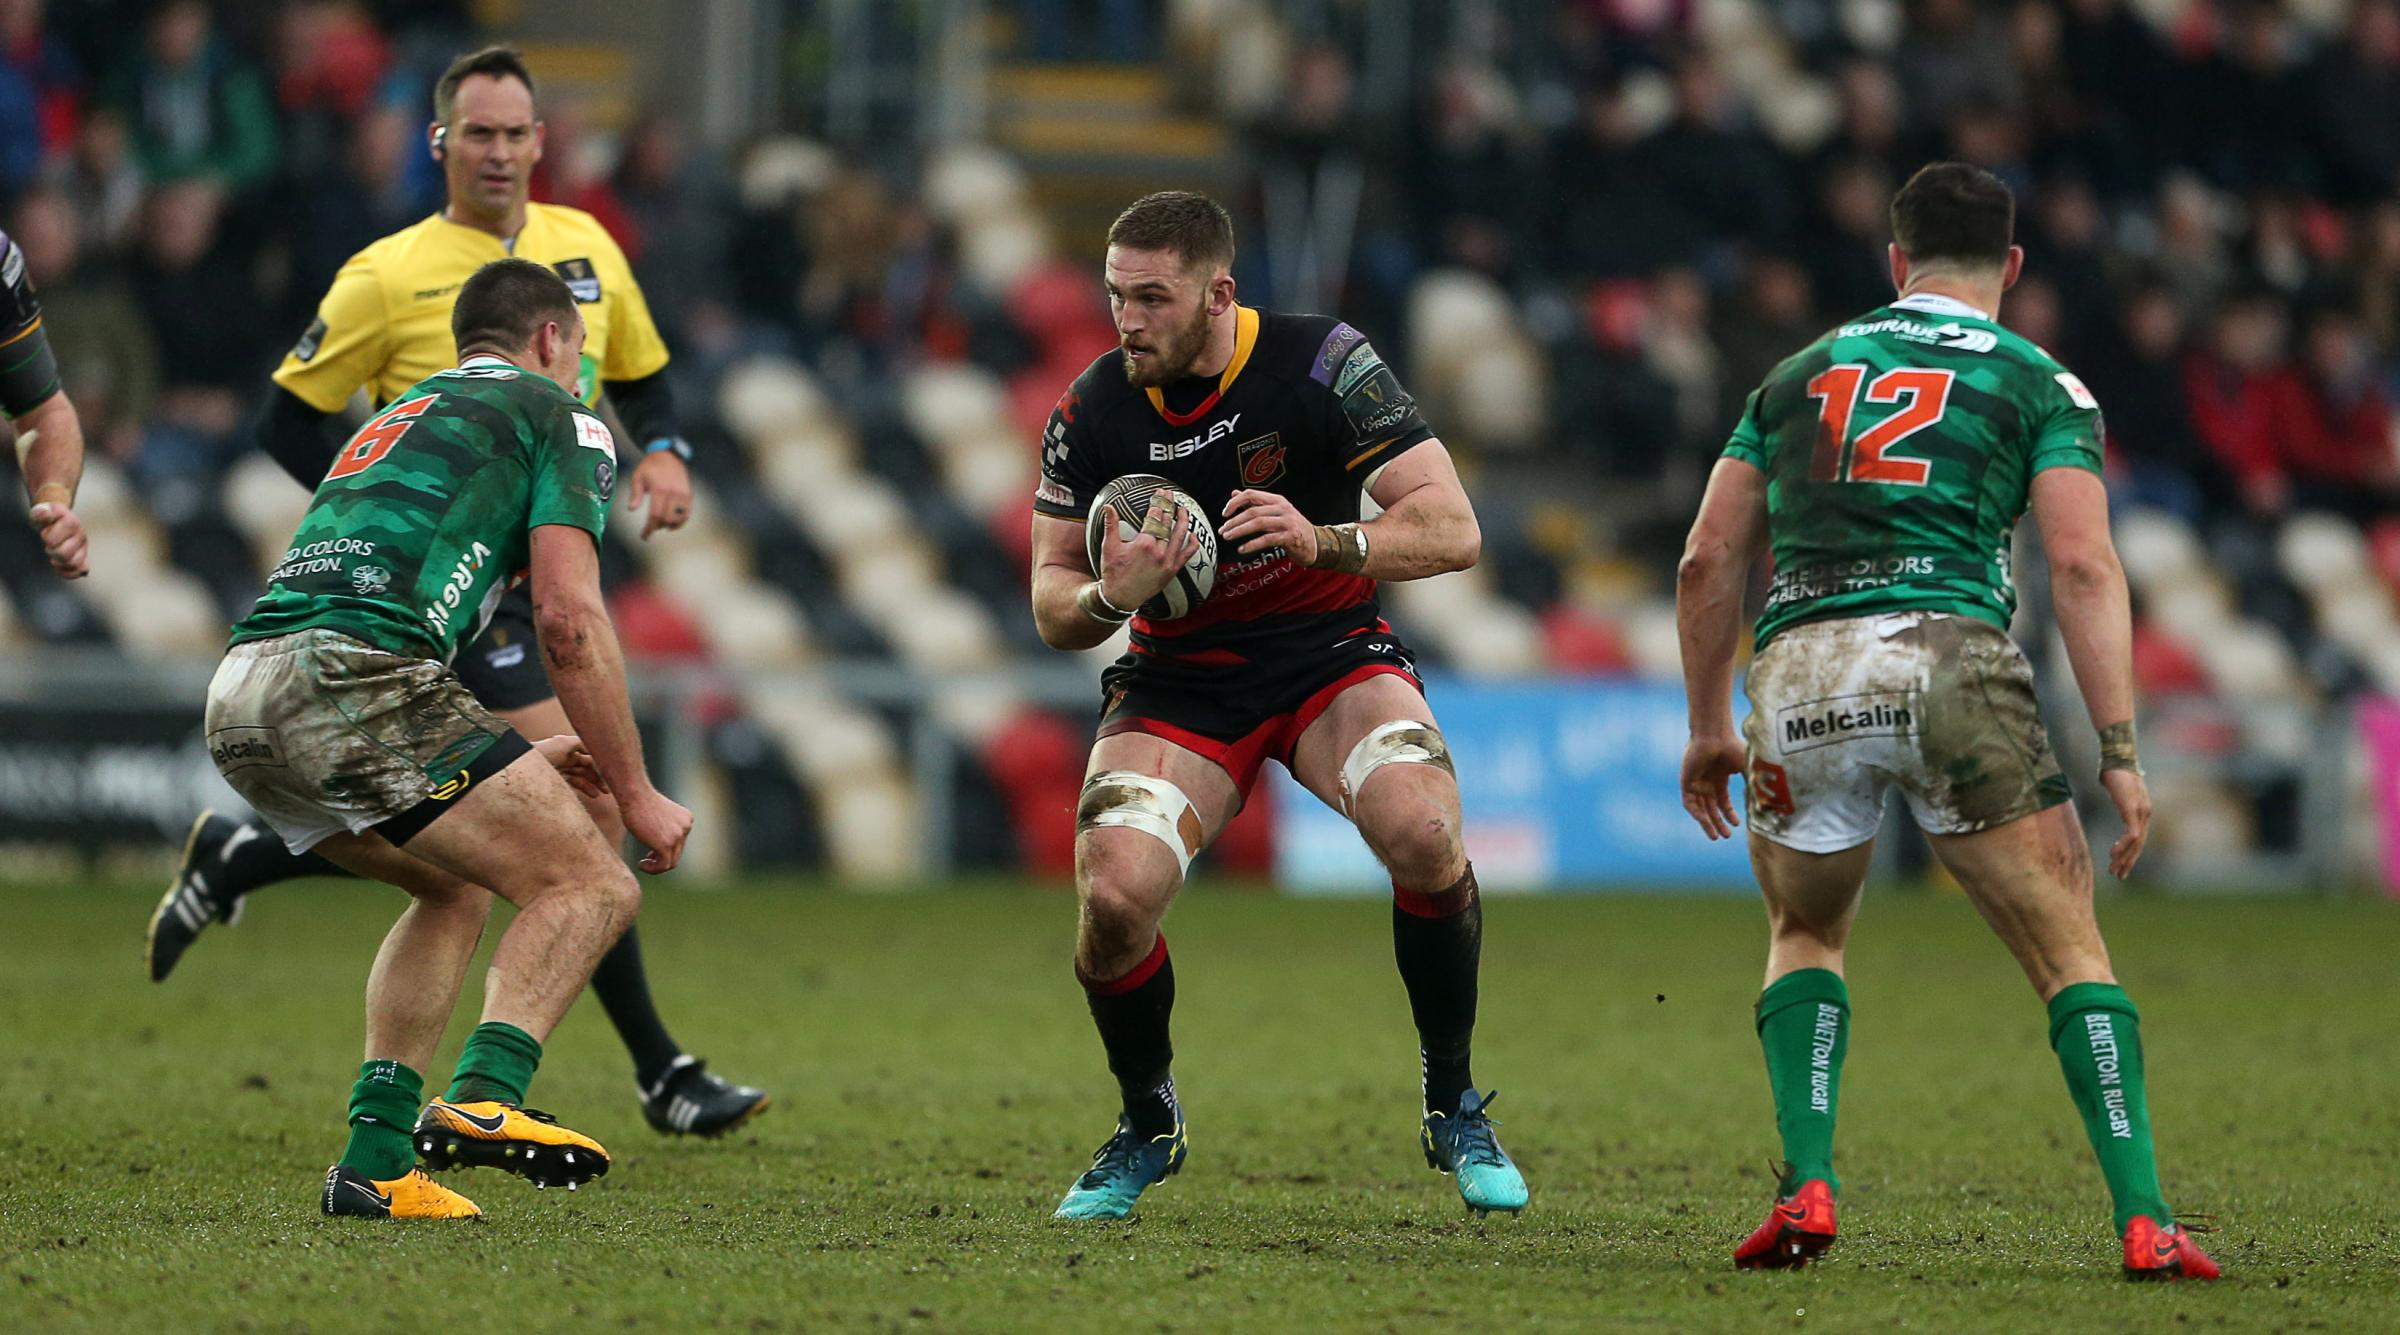 INJURY BLOW: Harri Keddie will miss the Dragons' game at Zebre